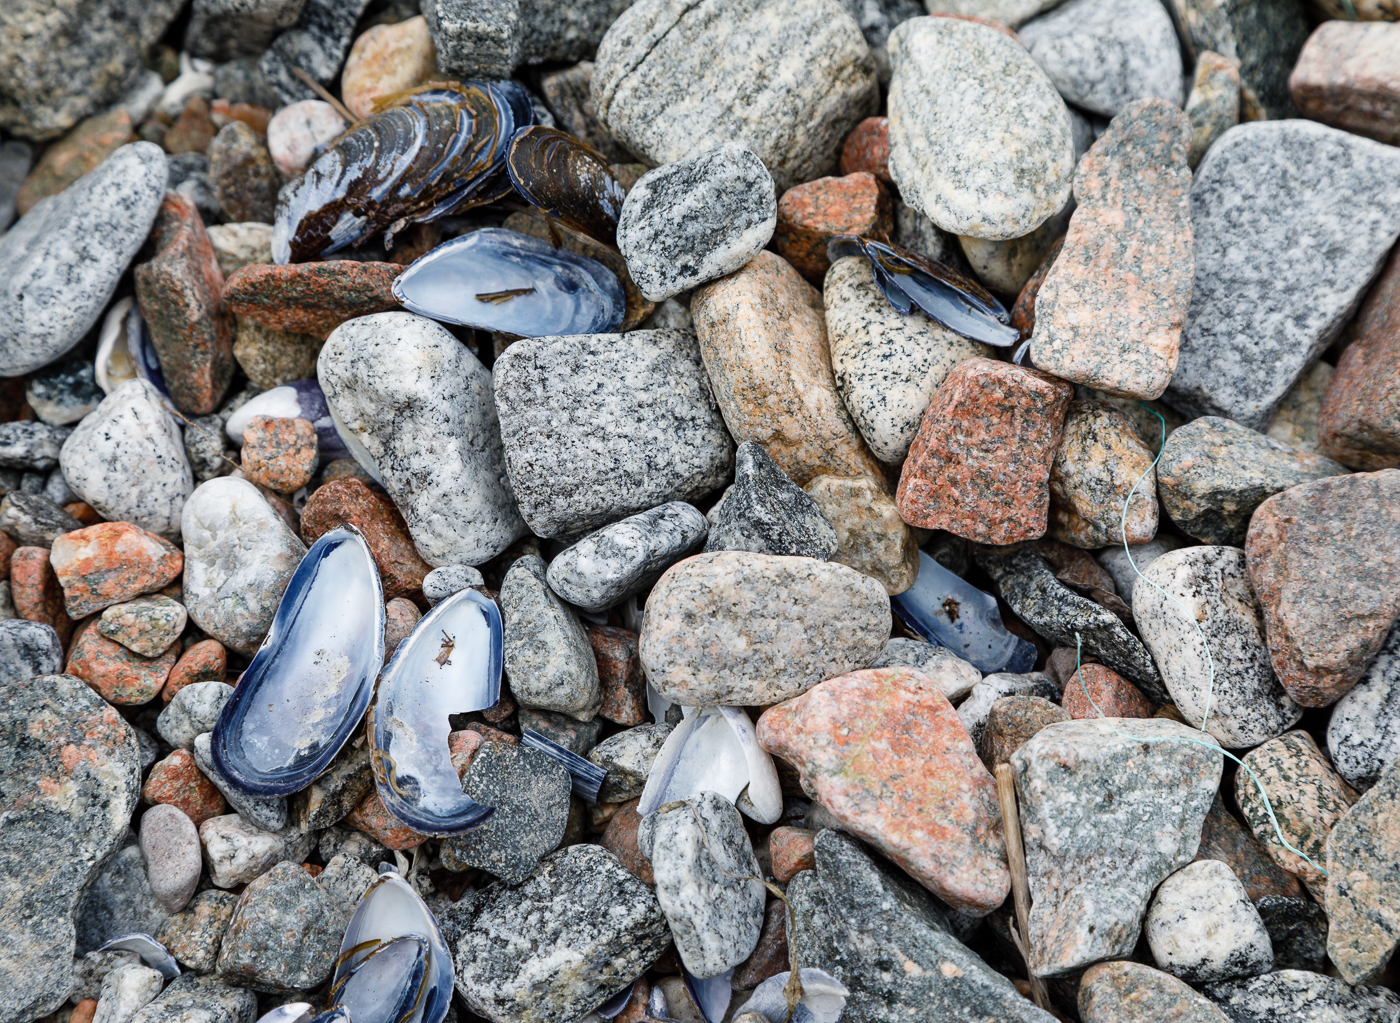 Stones, Shells and a Piece of Twine